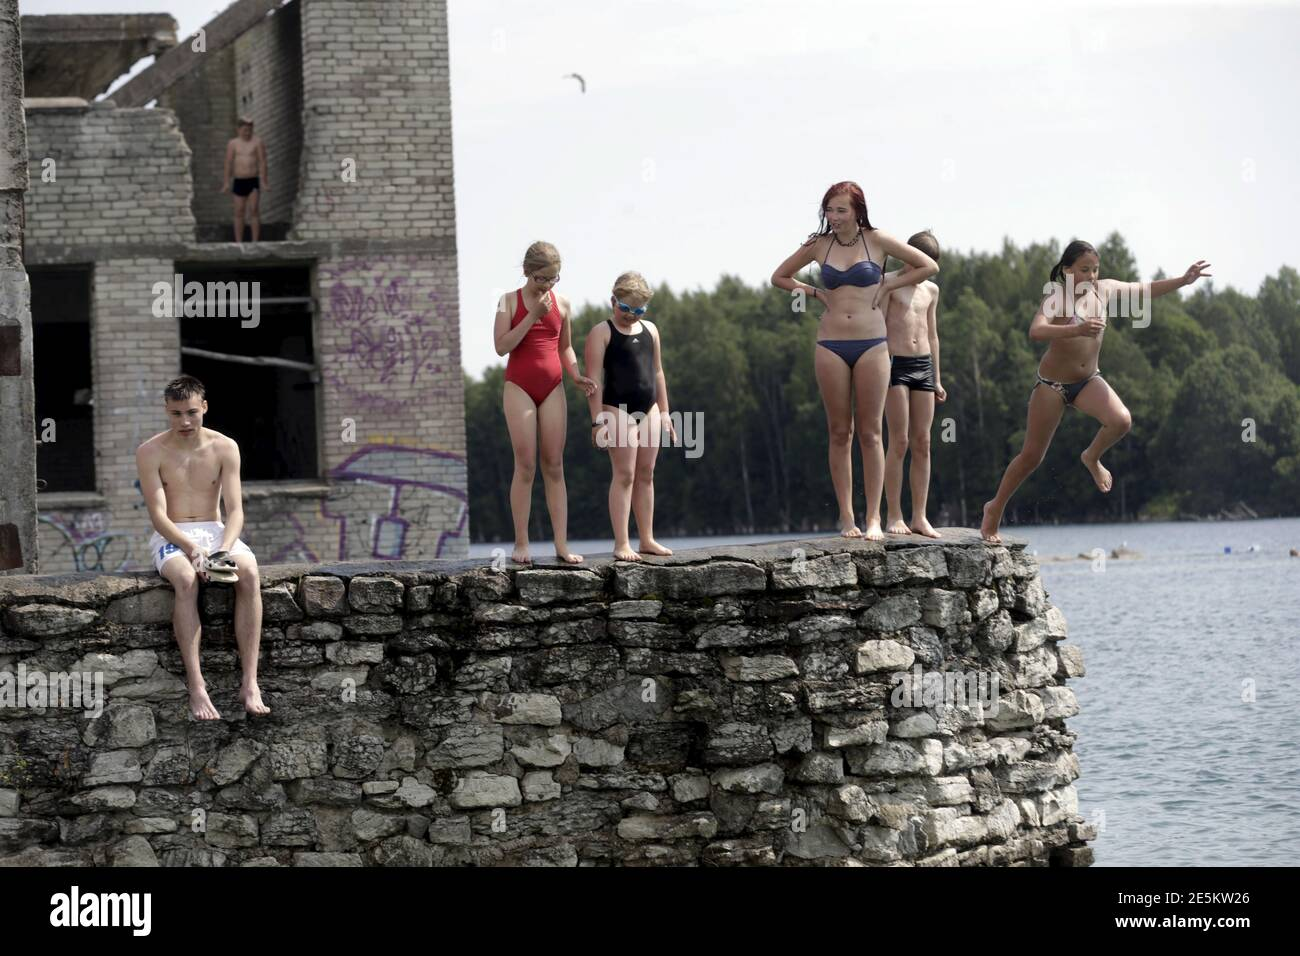 People jump into the water near Murru prison, an abandoned Soviet prison, in Rummu quarry, Estonia, during hot weather July 4, 2015. During the Soviet time, Rummu quarry was used as a mining site for Vasalemma marble and most of the workforce came from among the detainees of Murru prison. When the prison closed after 1991, pumps that once kept the quarry and the prison dry were shut down, causing water to fill the quarry. It has become an unofficial and unguarded swimming and diving spot, attracting locals and tourists. REUTERS/Ints Kalnins Stock Photo